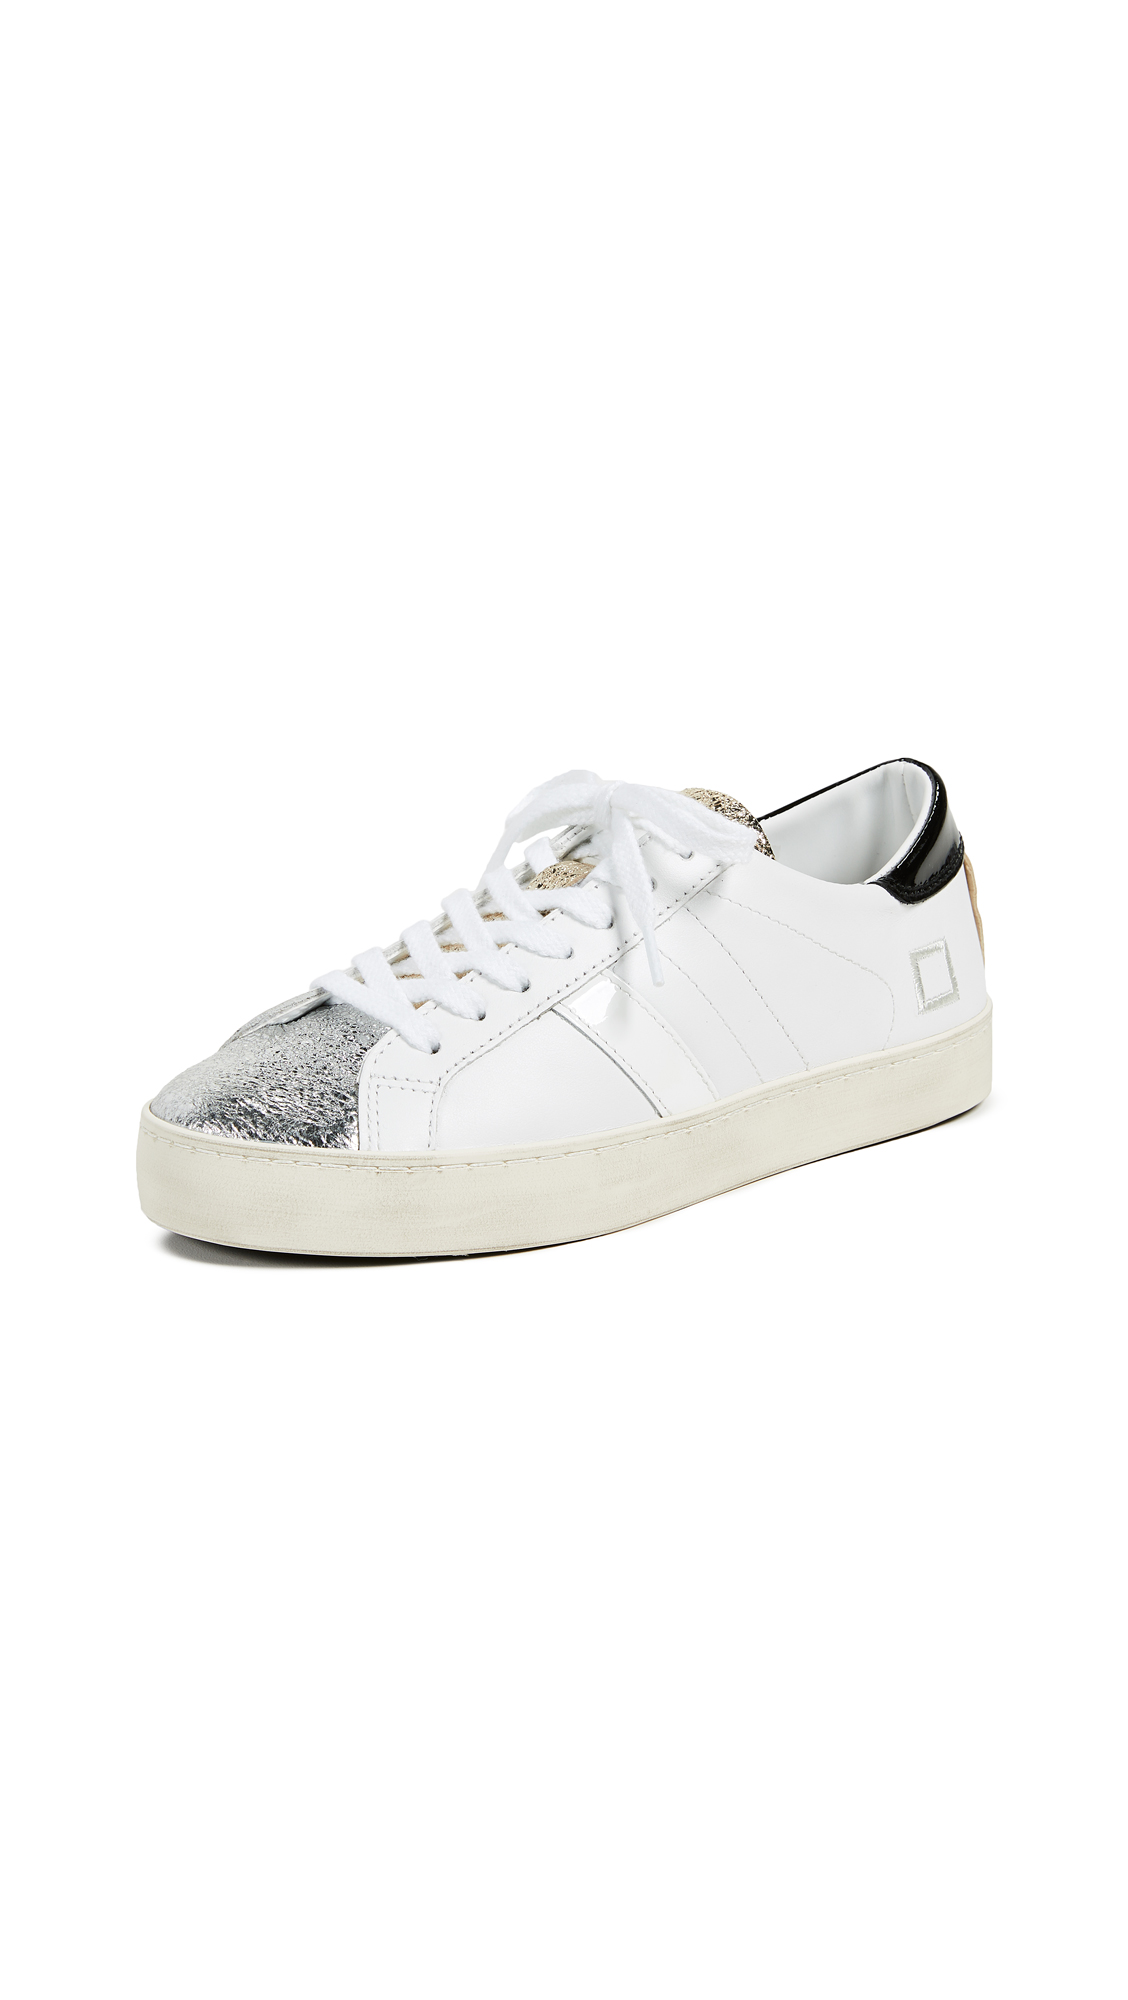 D.A.T.E. Hill Low Sneakers - Black/White